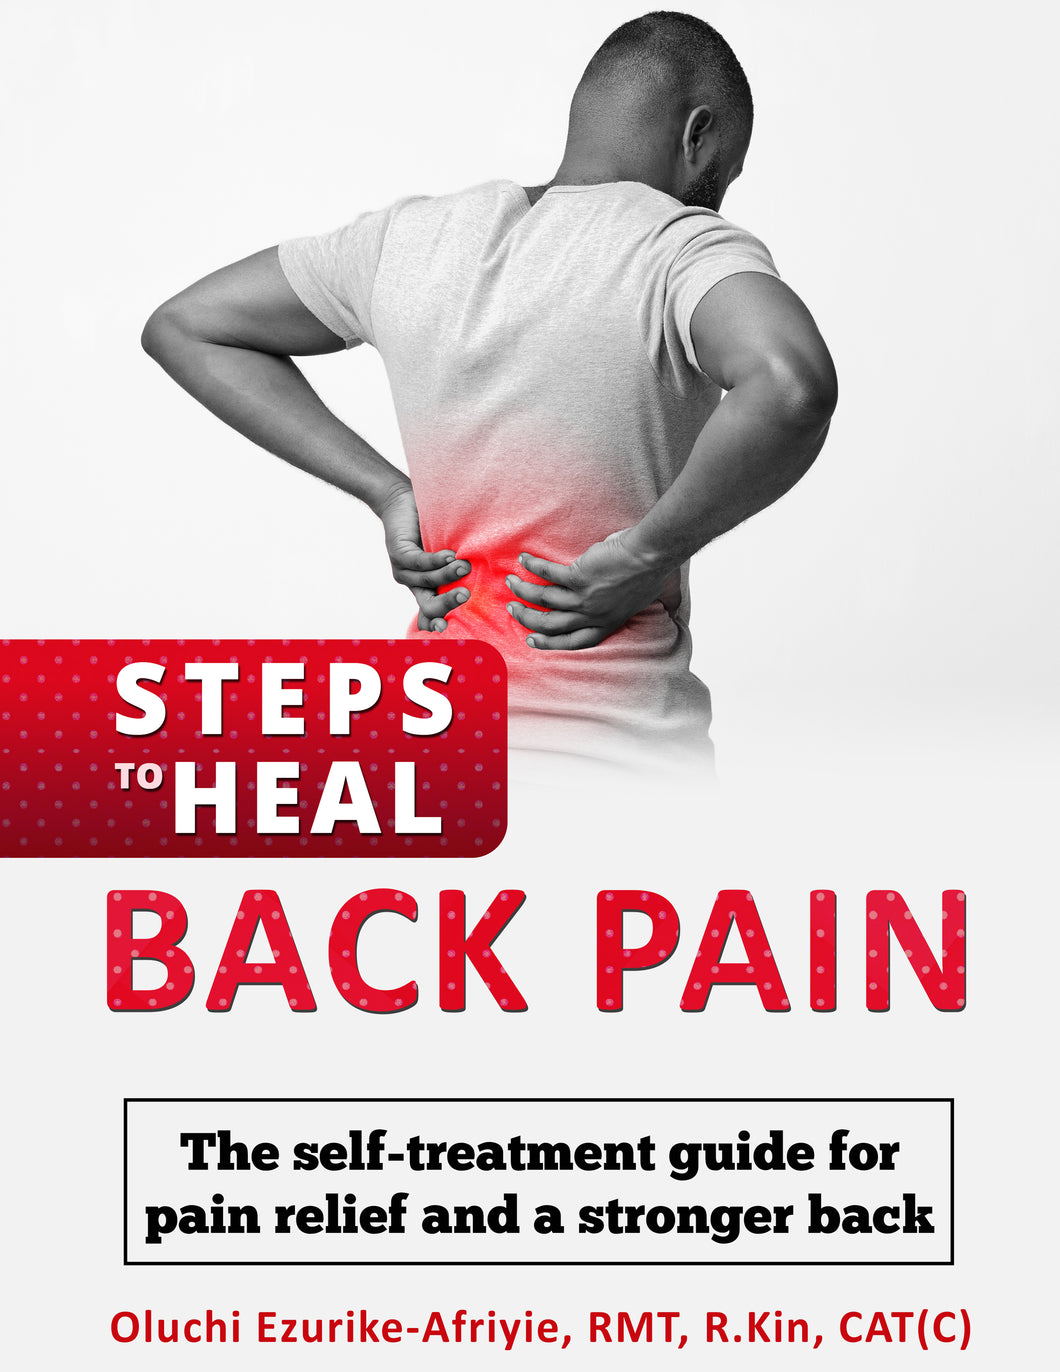 3 Steps to Heal Back Pain: The self-treatment guide for pain relief and a stronger back